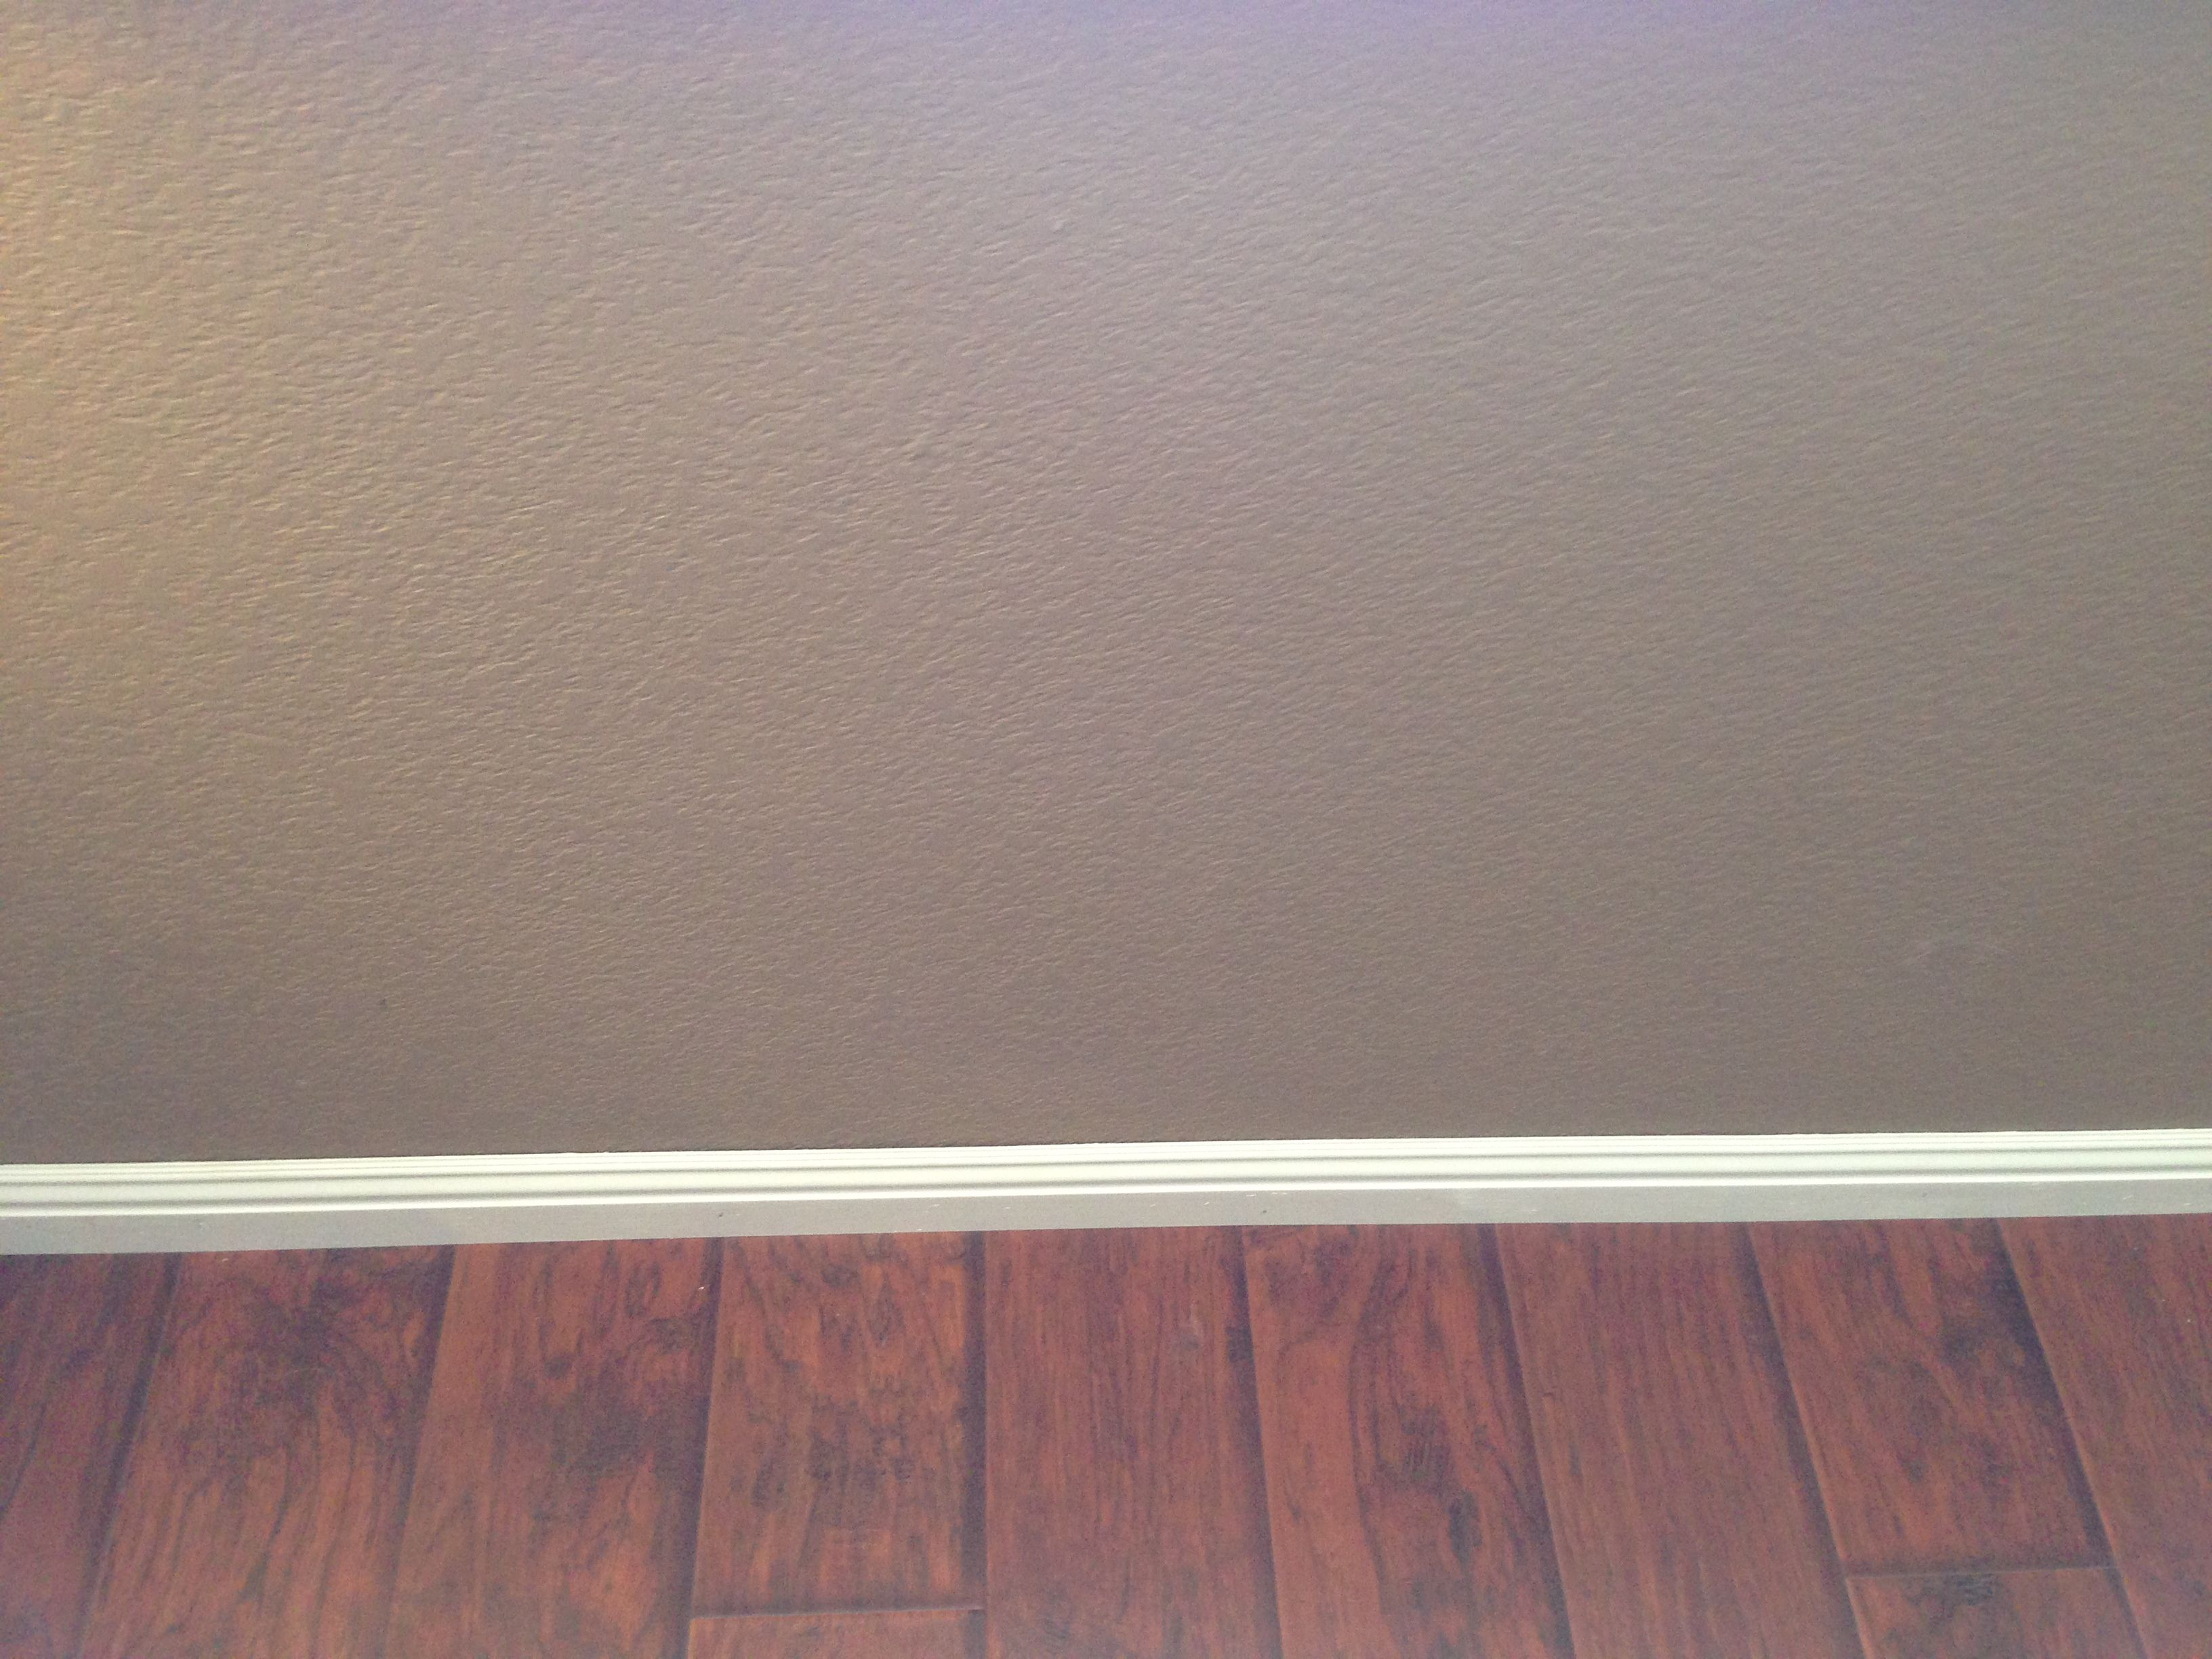 mushroom paint colorNew Family room floors and walls Select Surfaces Canyon oak floor